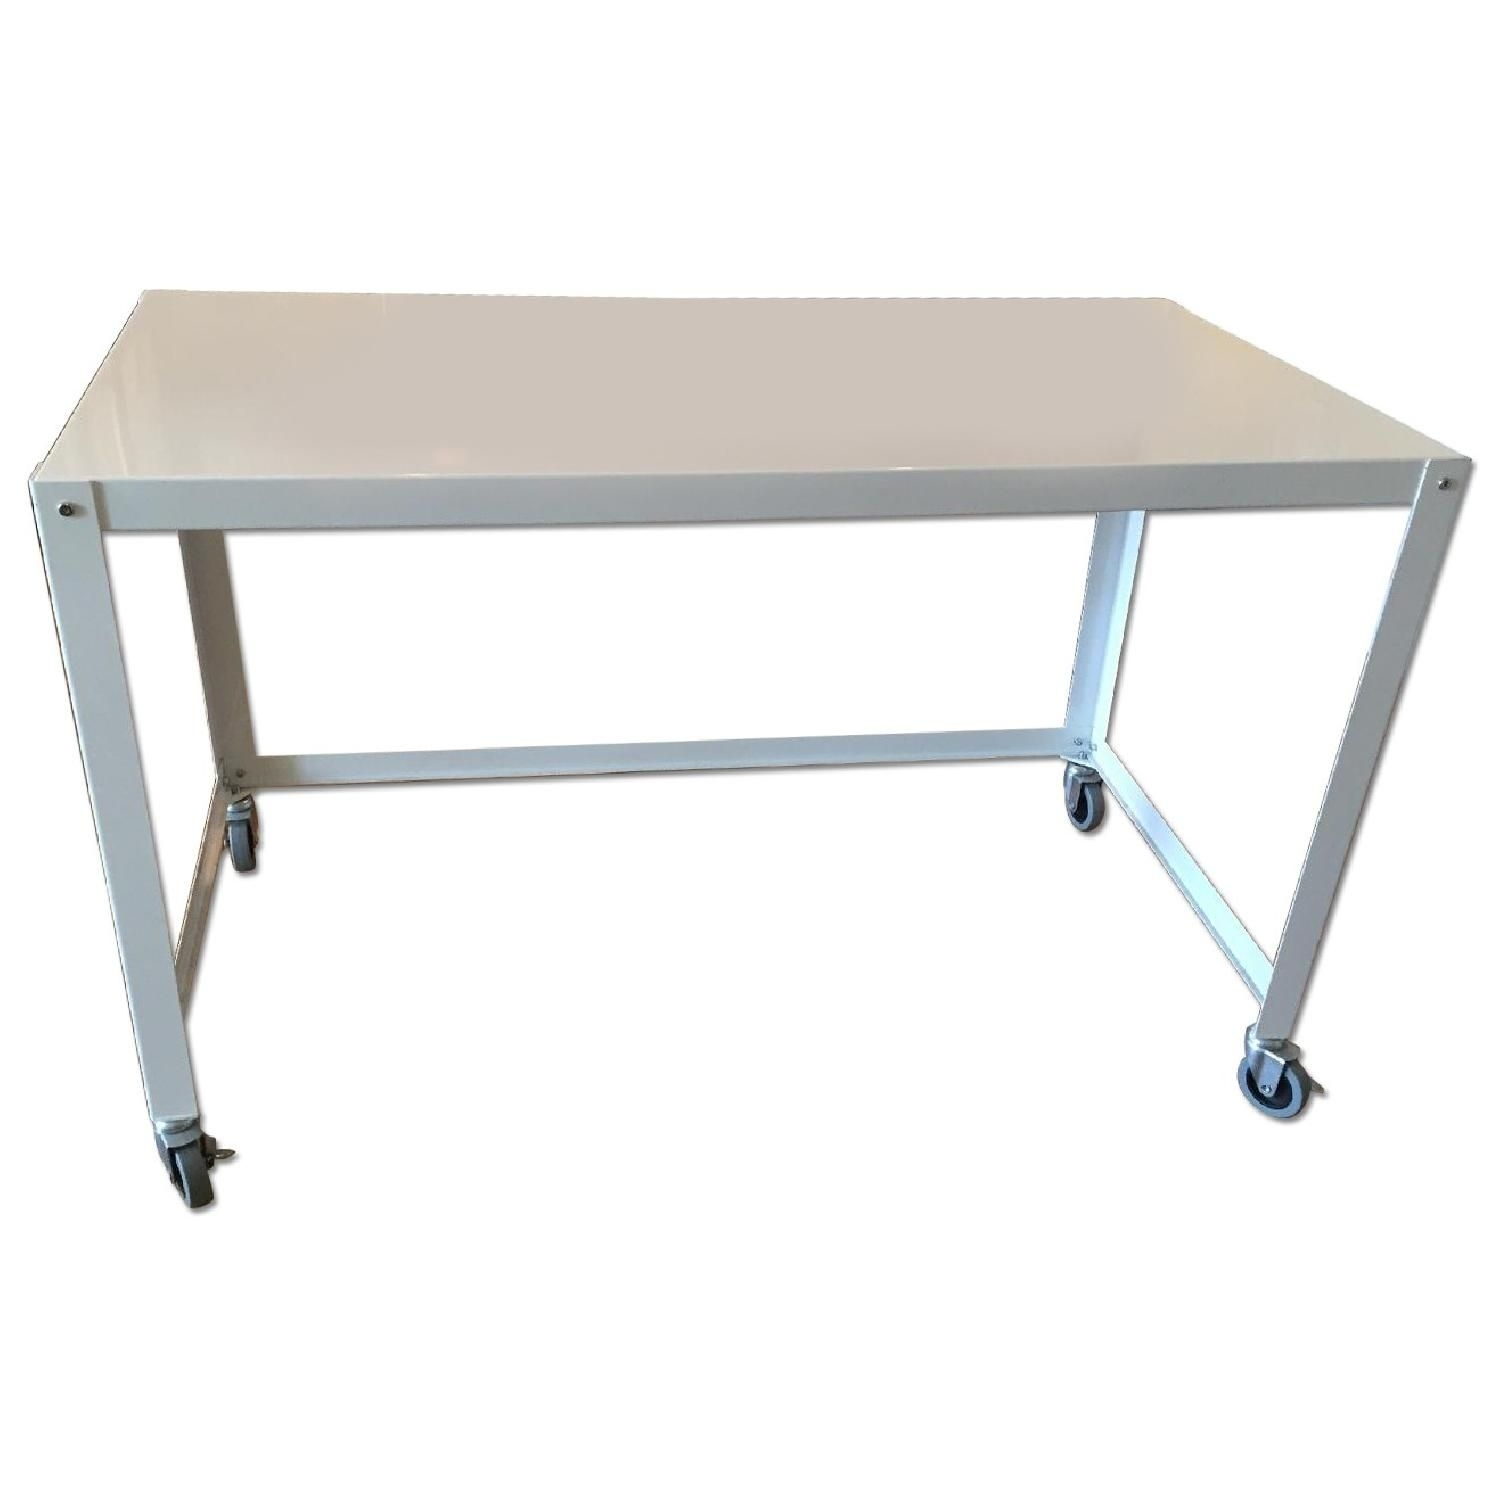 Cb2 Go-Cart White Rolling Desk | Lic Kids | Pinterest | Rolling Desk regarding Go-Cart White Rolling Coffee Tables (Image 8 of 30)